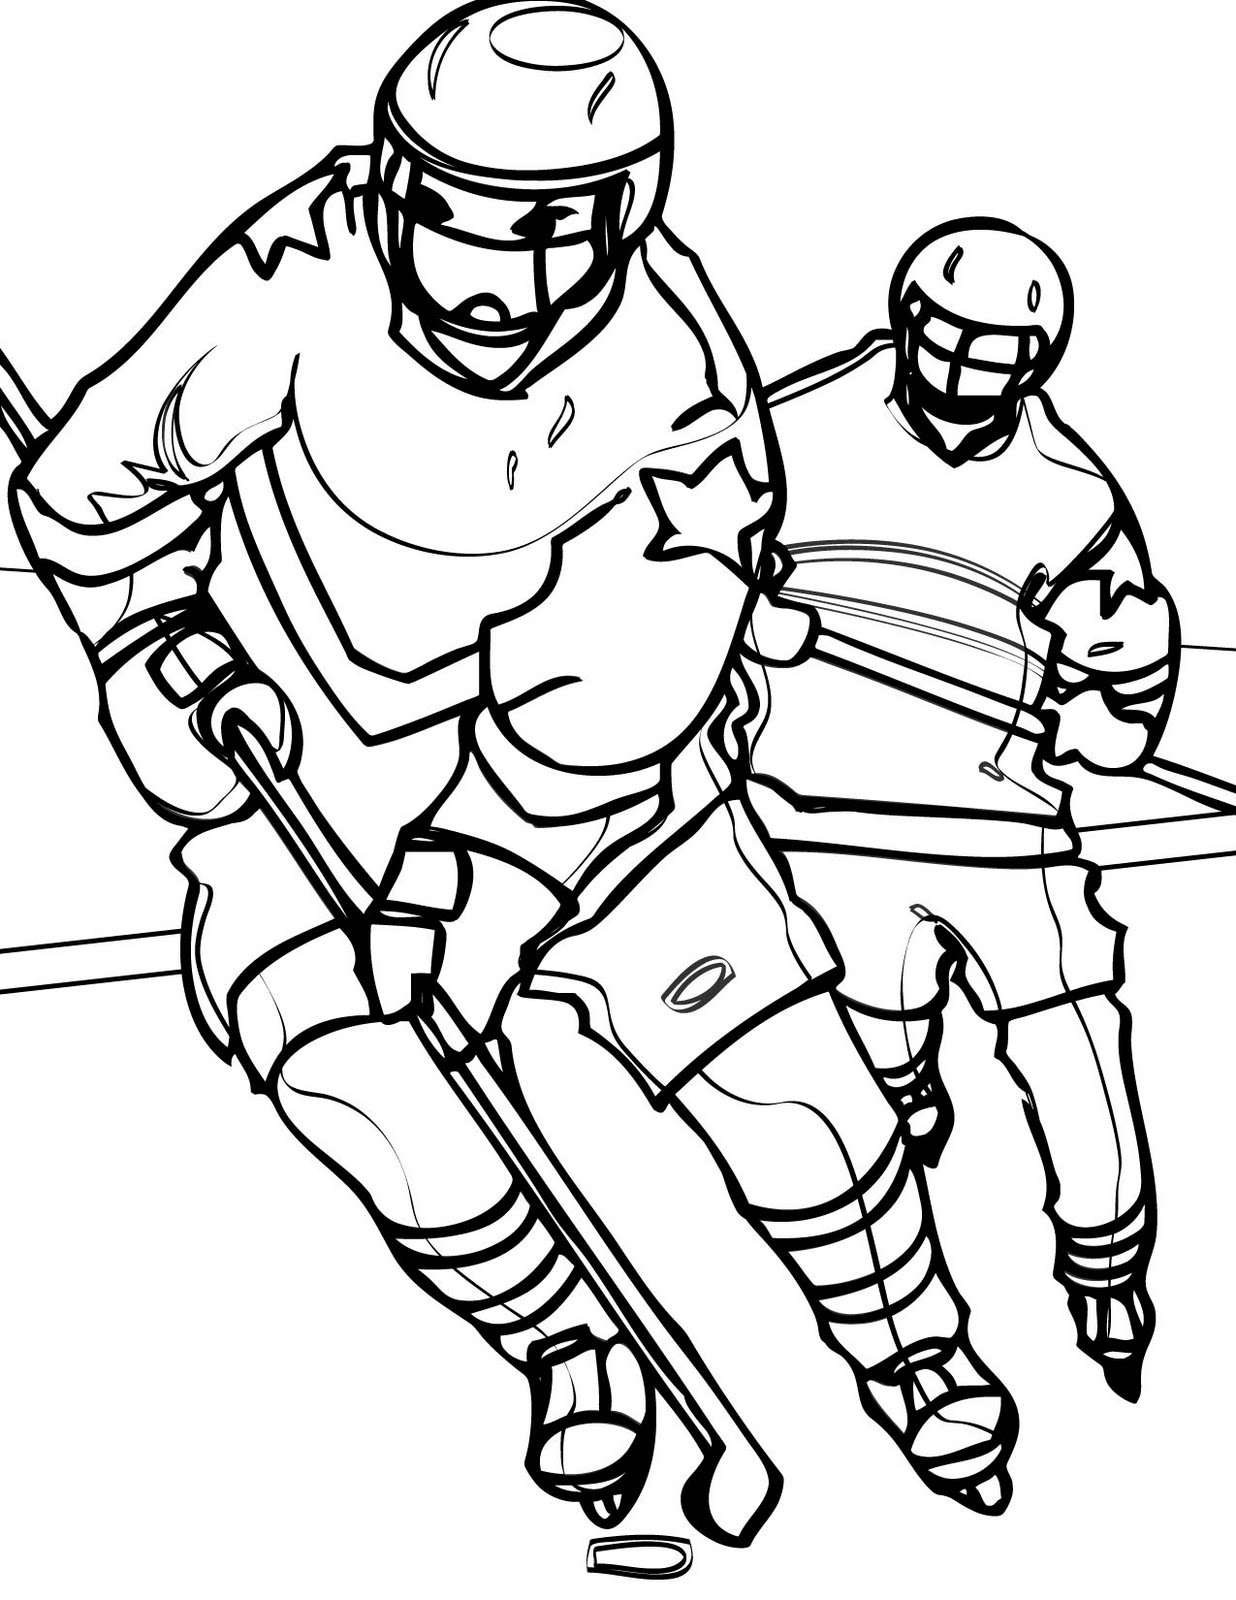 Hockey Coloring Sheets. Coloring Pages of Hockey